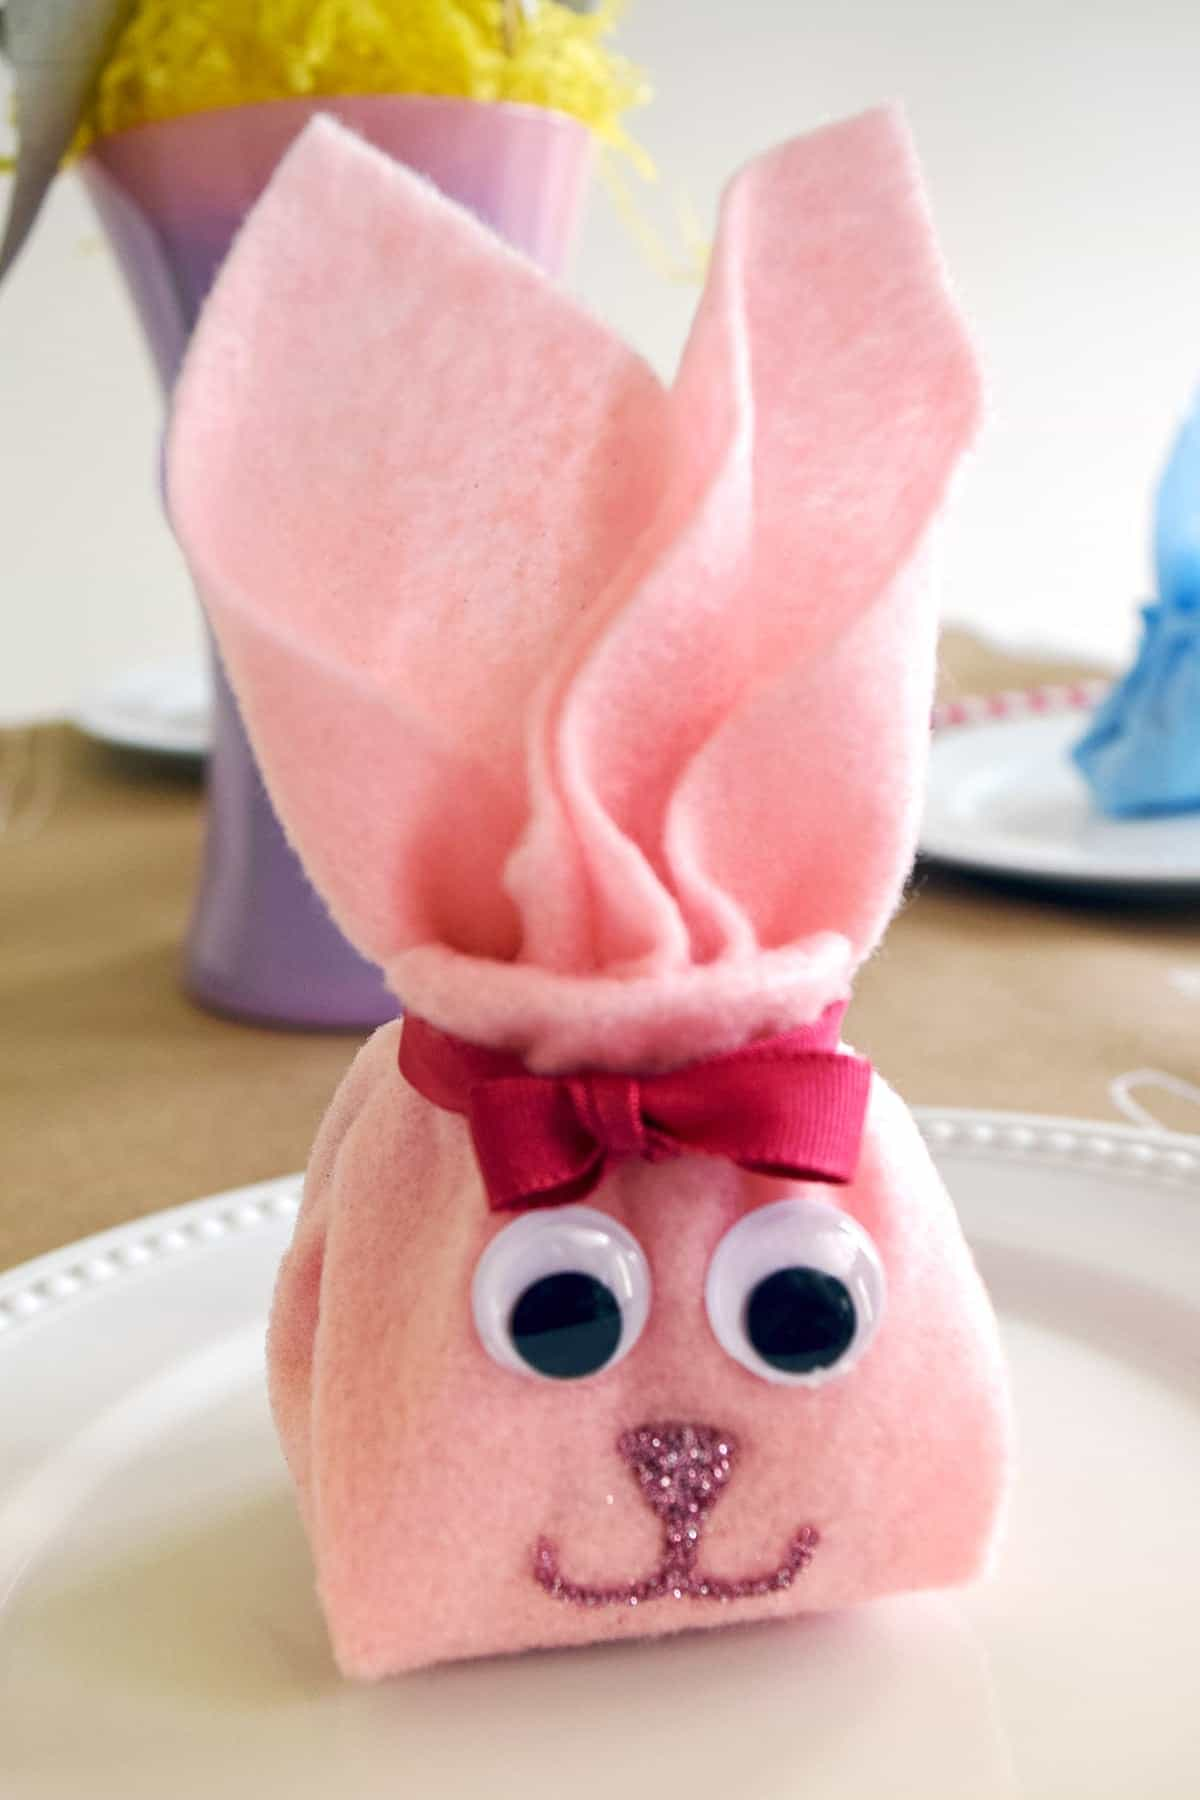 Pink felt napkin folded into bunny shape with ribbon and googly eyes with glitter mouth and nose on white plate.